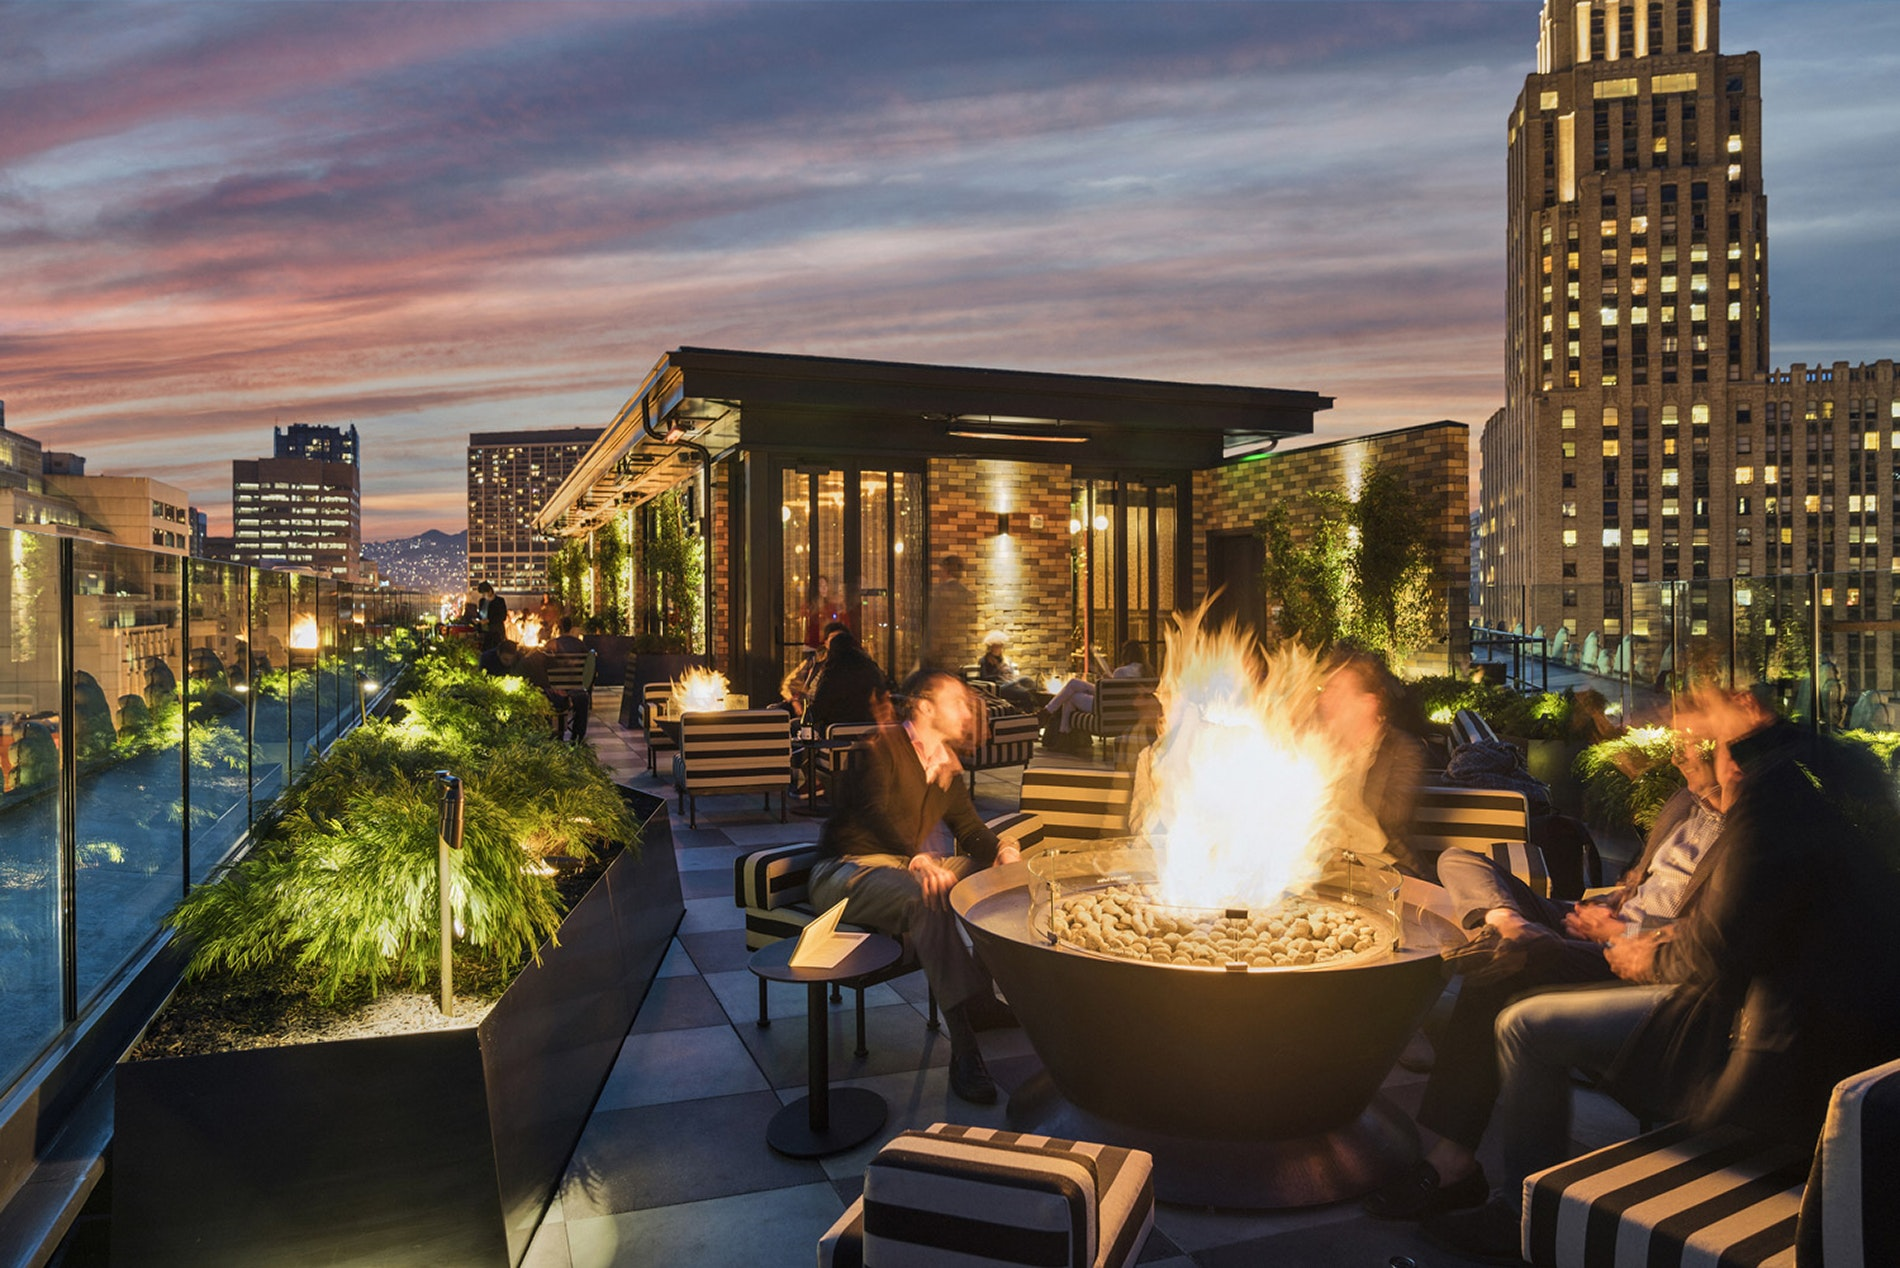 Proper, indeed: Dreamy rooftop views and a chic crowd have made Charmaine's a hit.